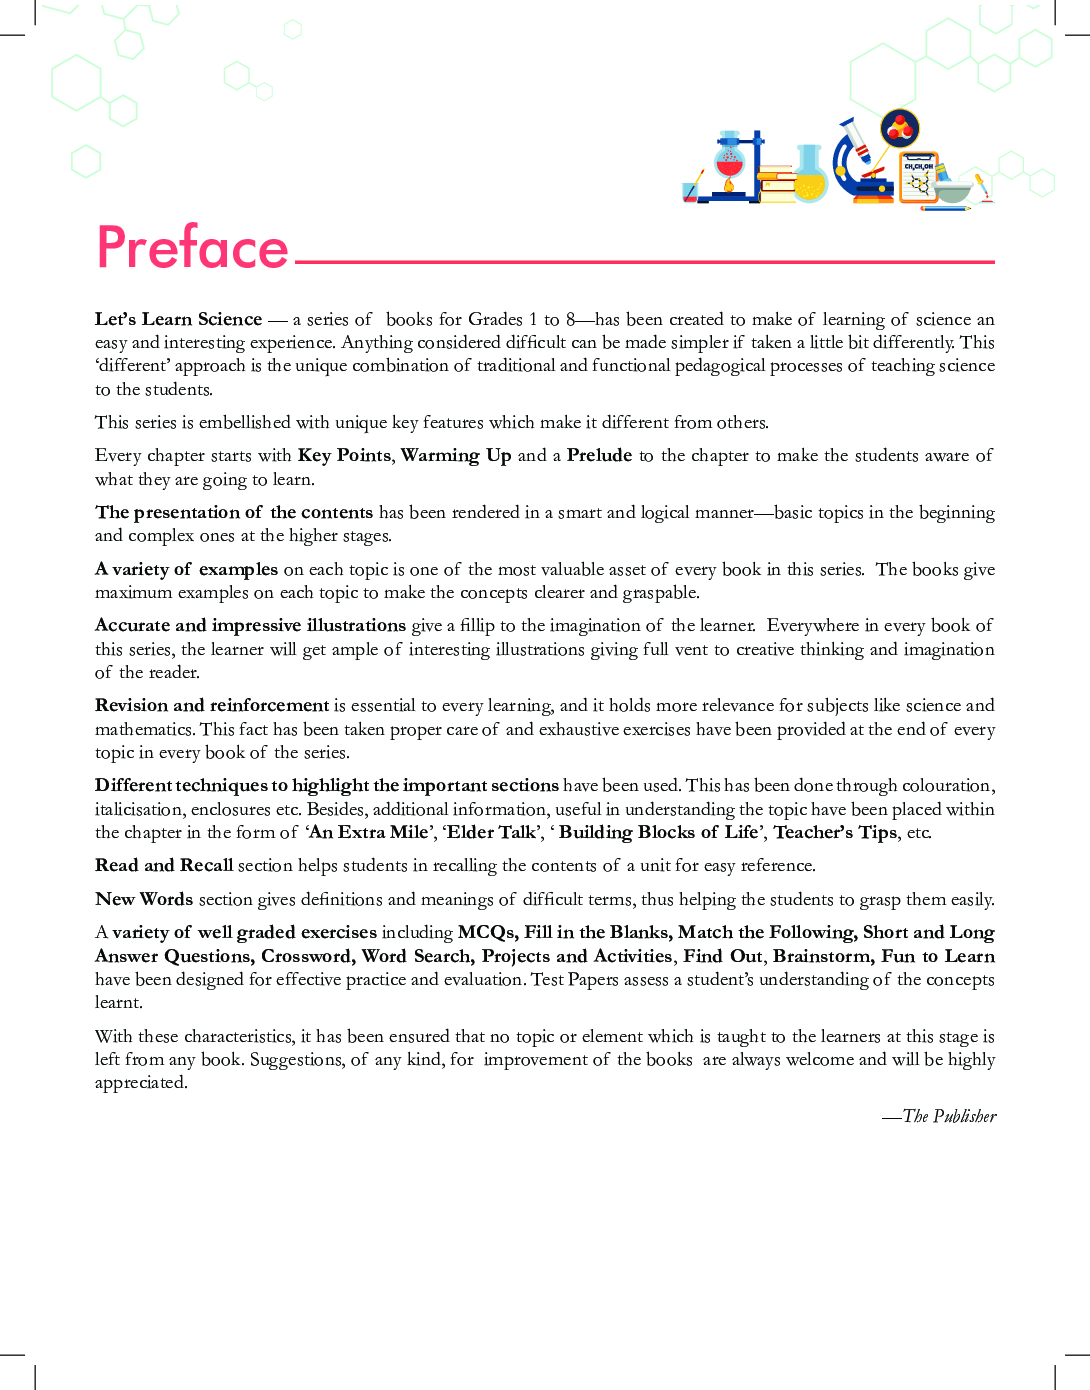 Educart CBSE Let's Learn Science Textbook For Class - VII - Page 4